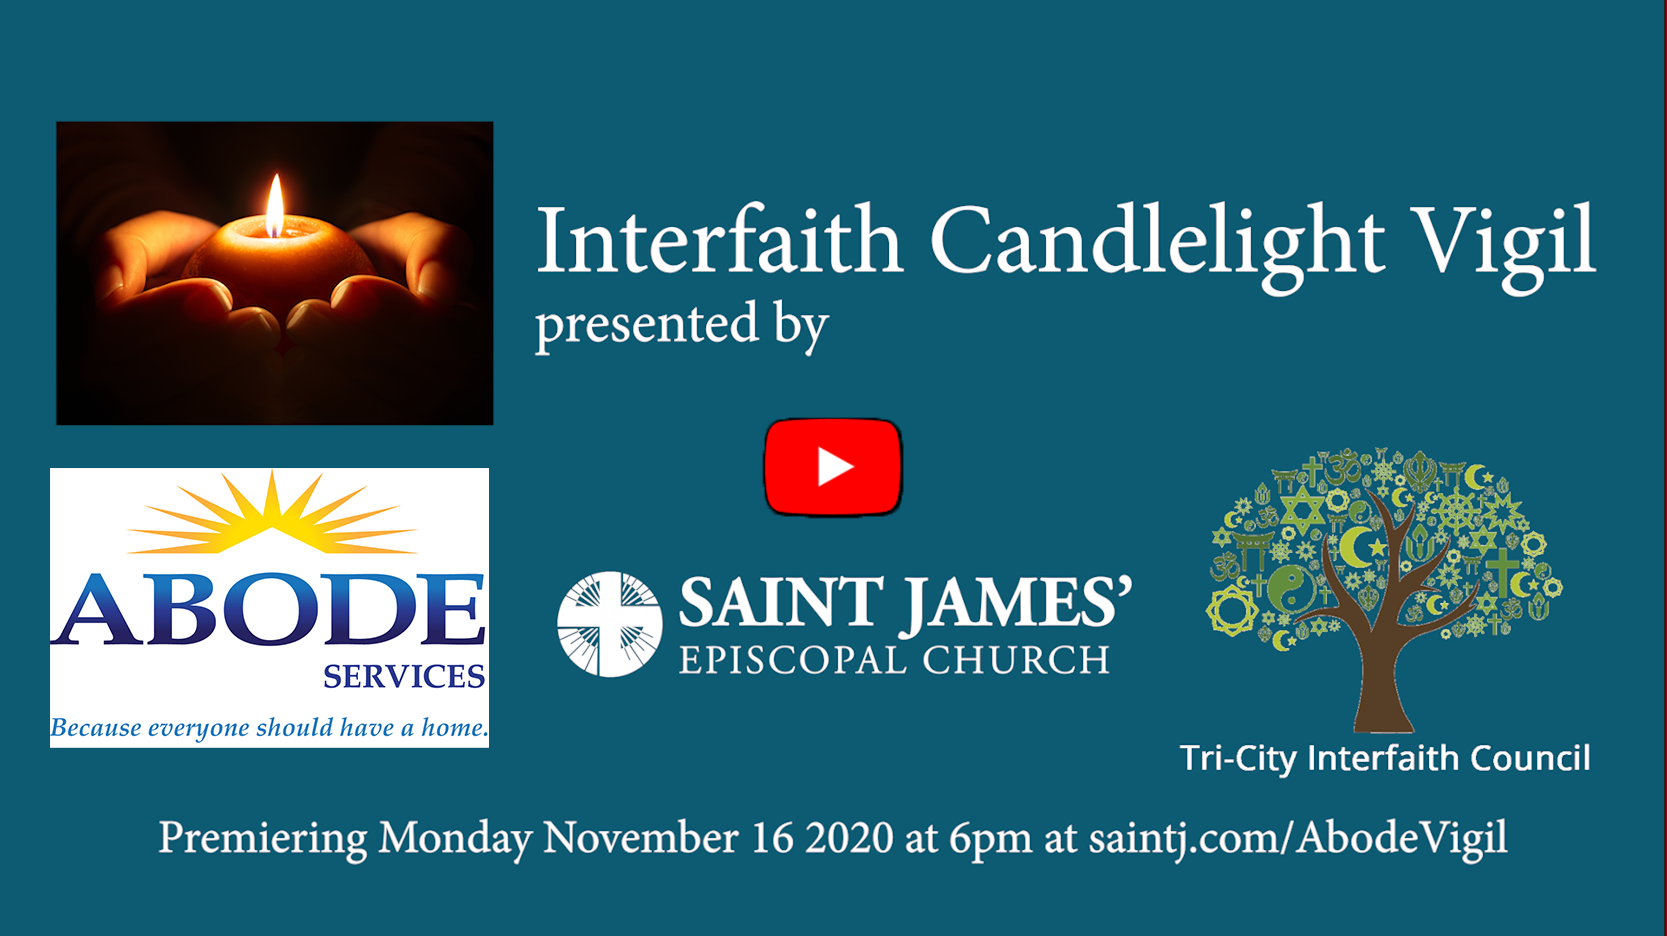 Interfaith Candlelight Vigil